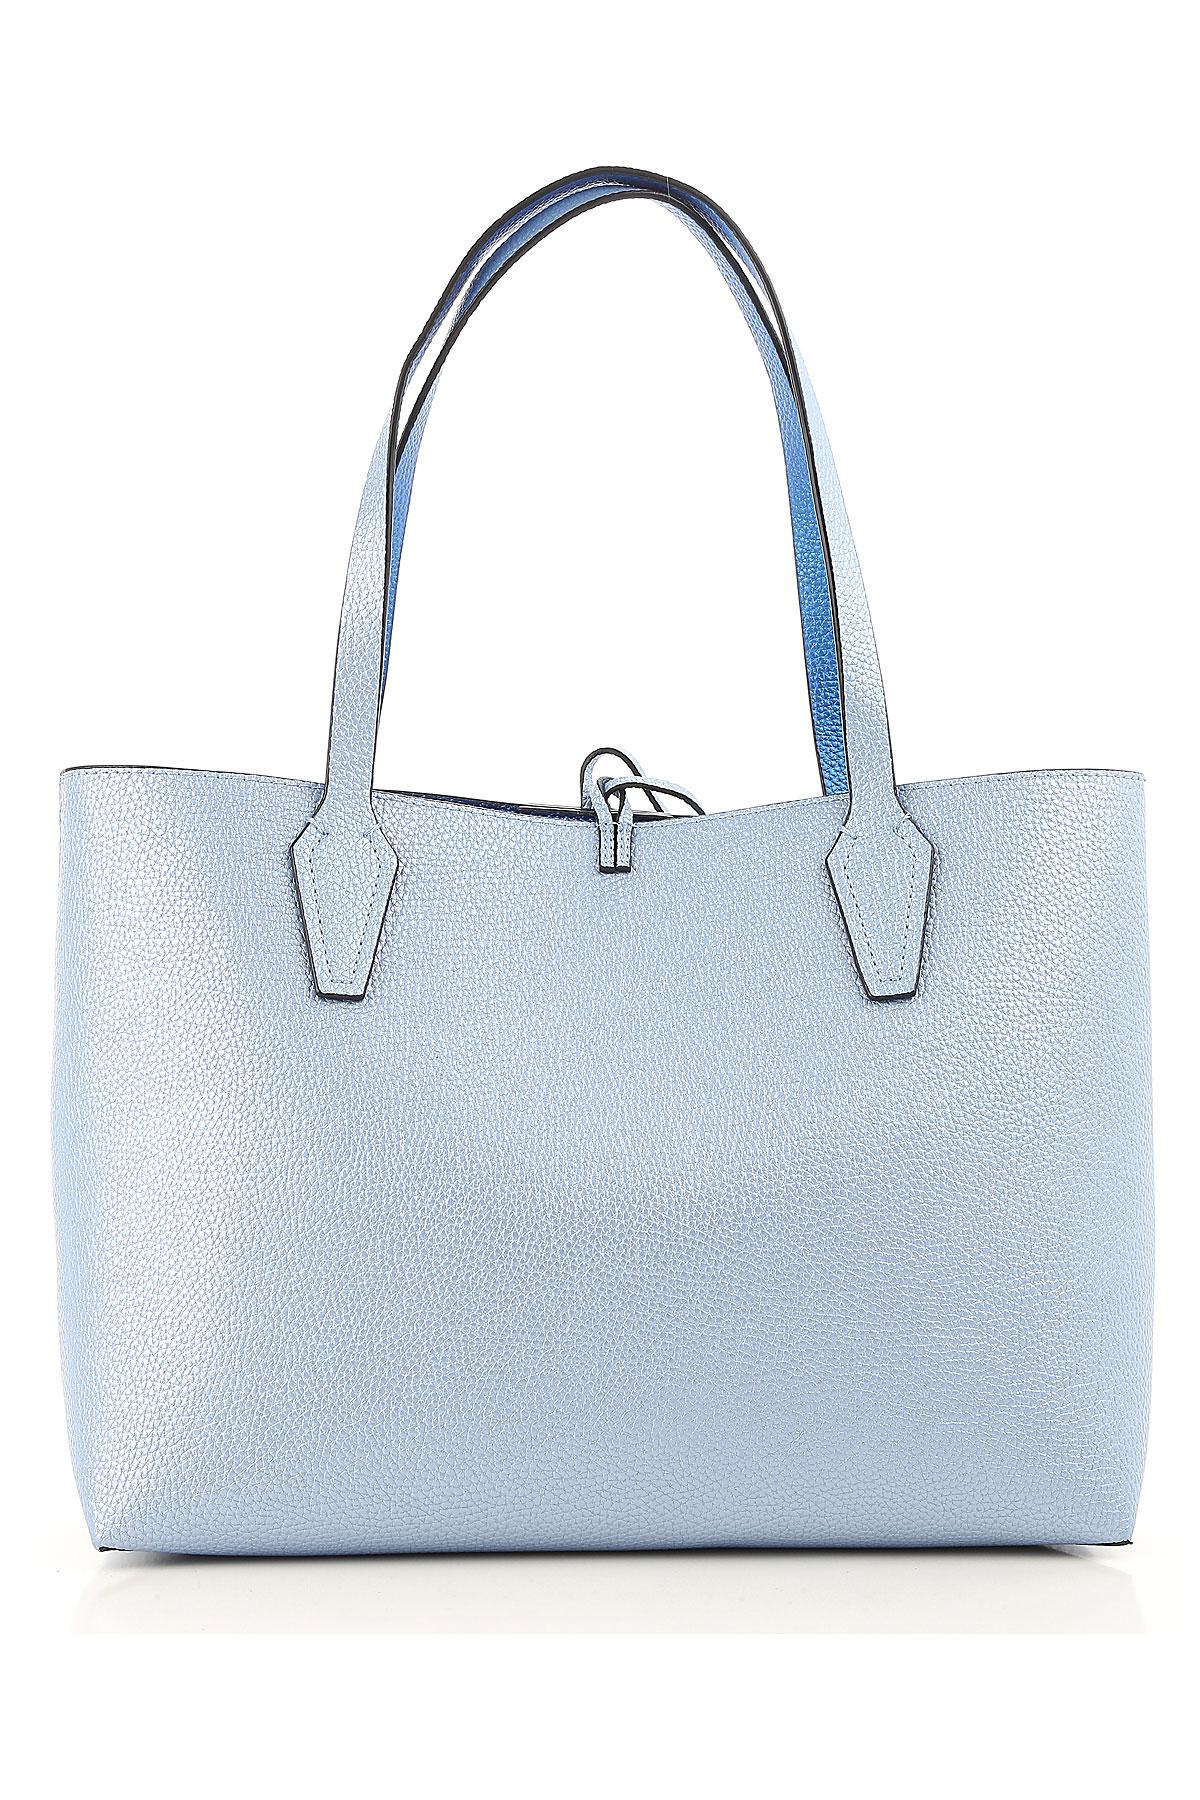 974dad50fd Guess Handbags Blue - Image Of Handbags Imageorp.co